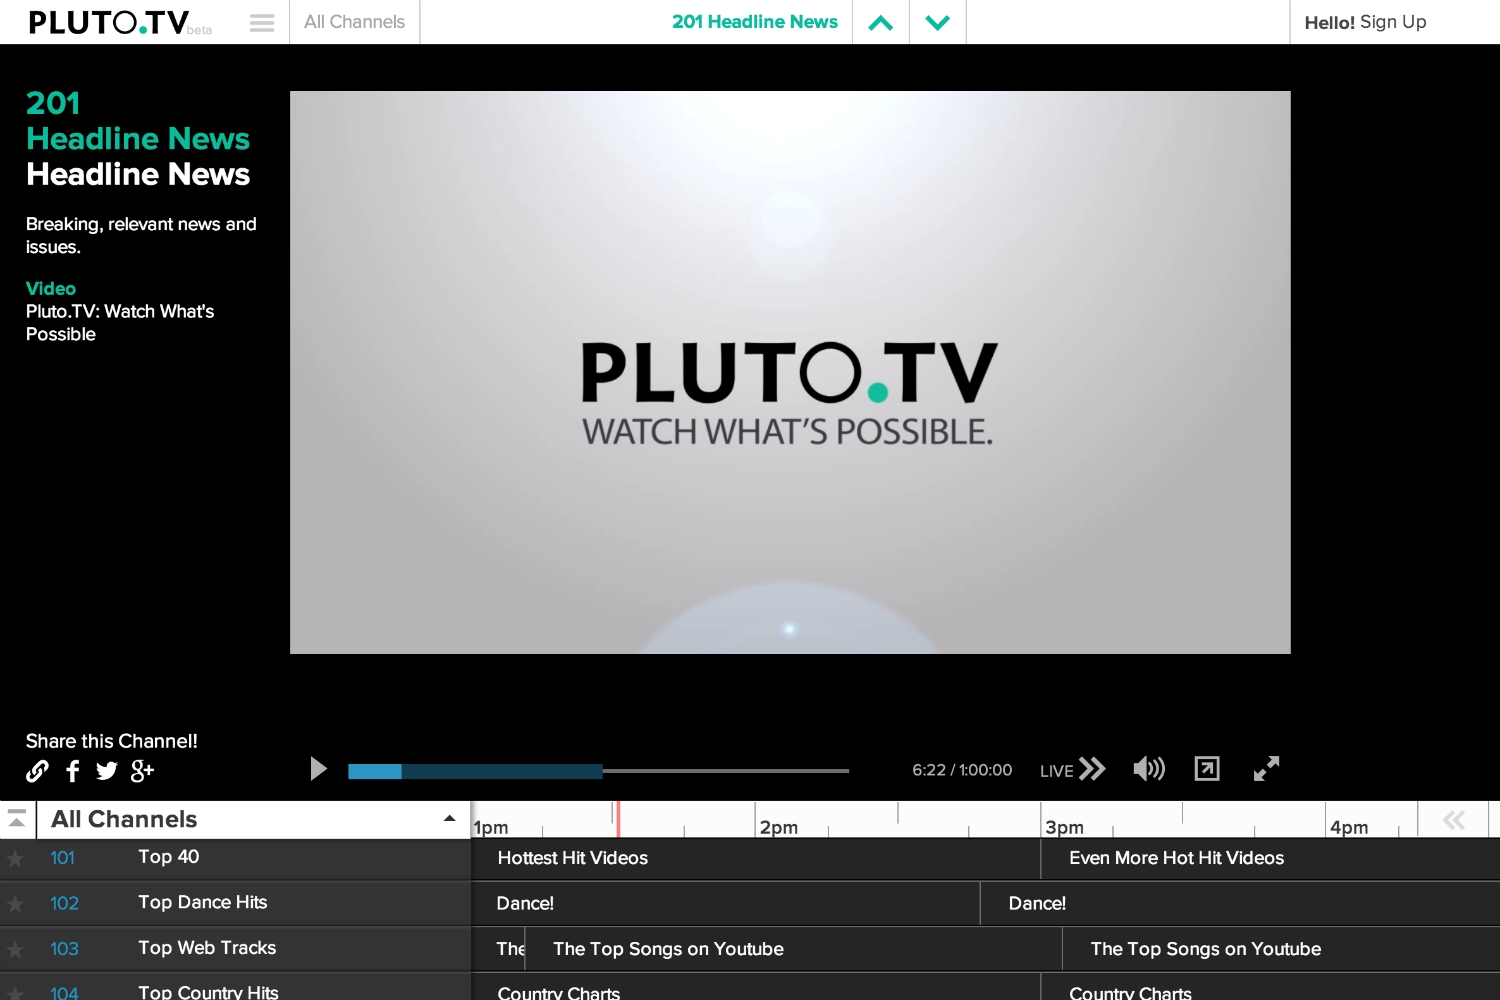 Pluto.tv aims to make YouTube work like old-school TV   Digital Trends